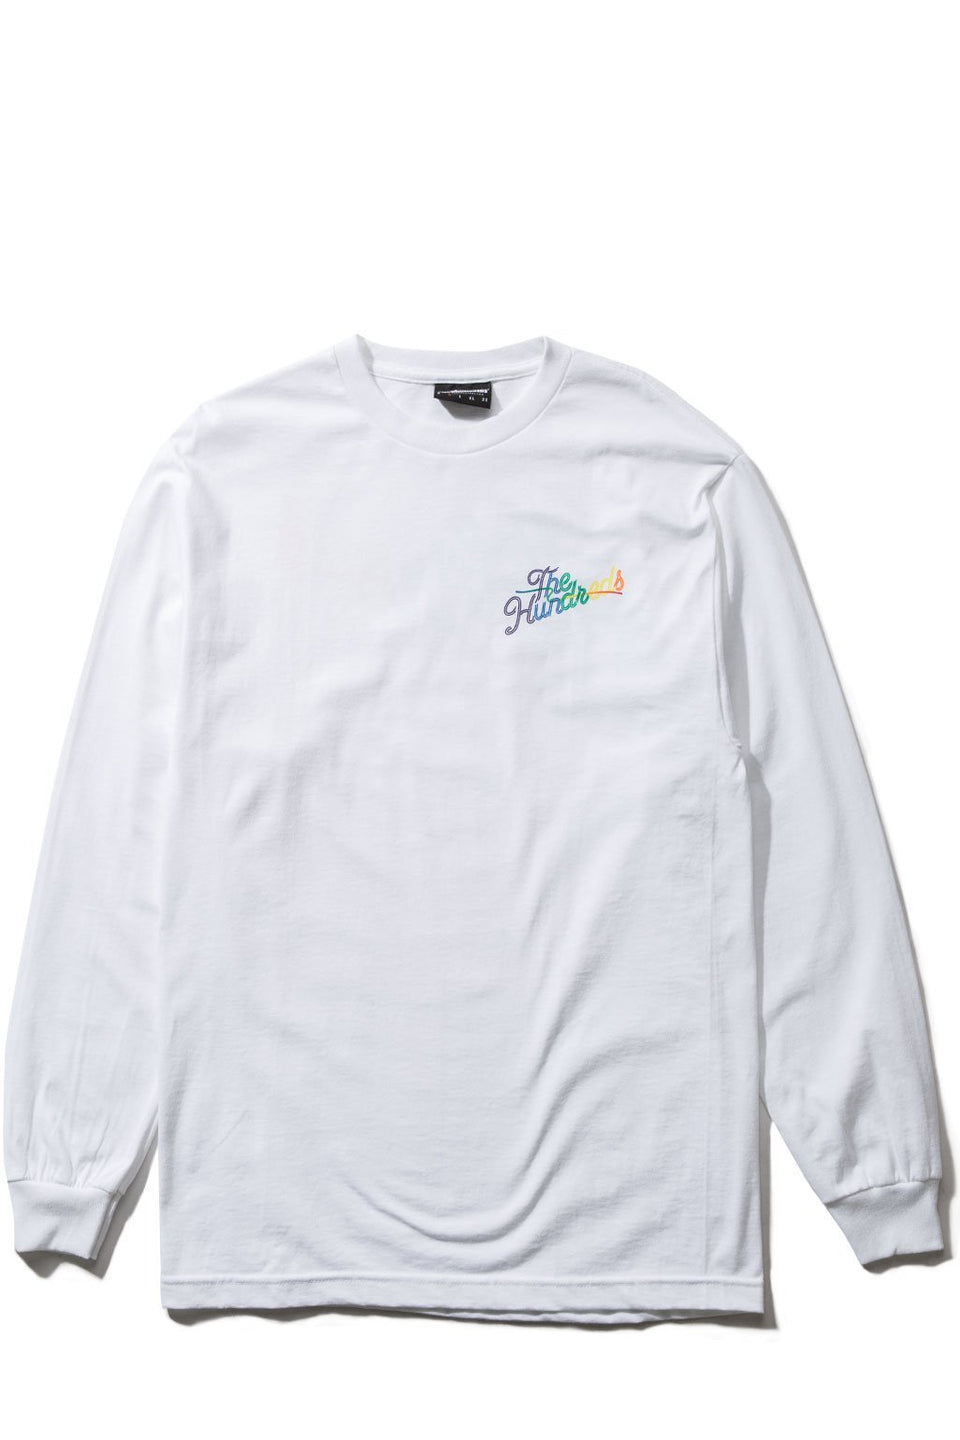 Spectrum Slant L/S Shirt-TOPS-The Hundreds UK